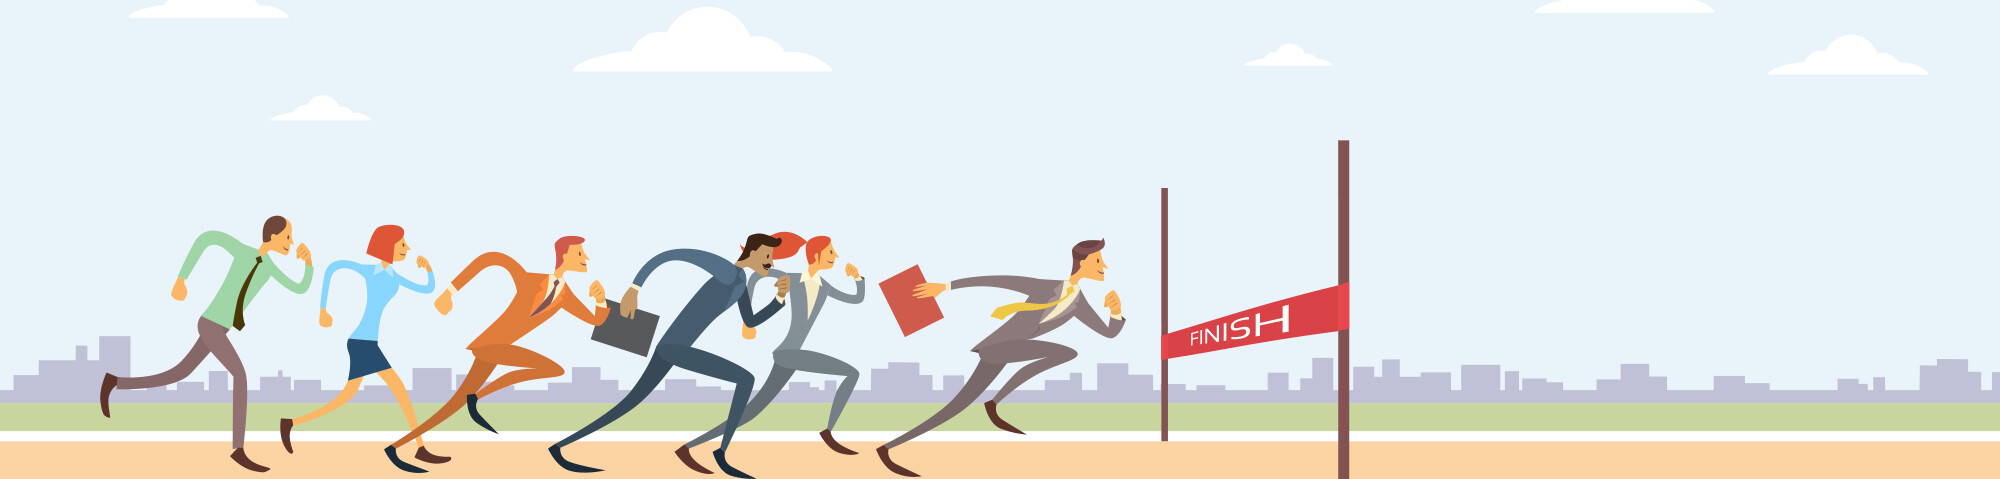 How To Be an Effective Business Leader